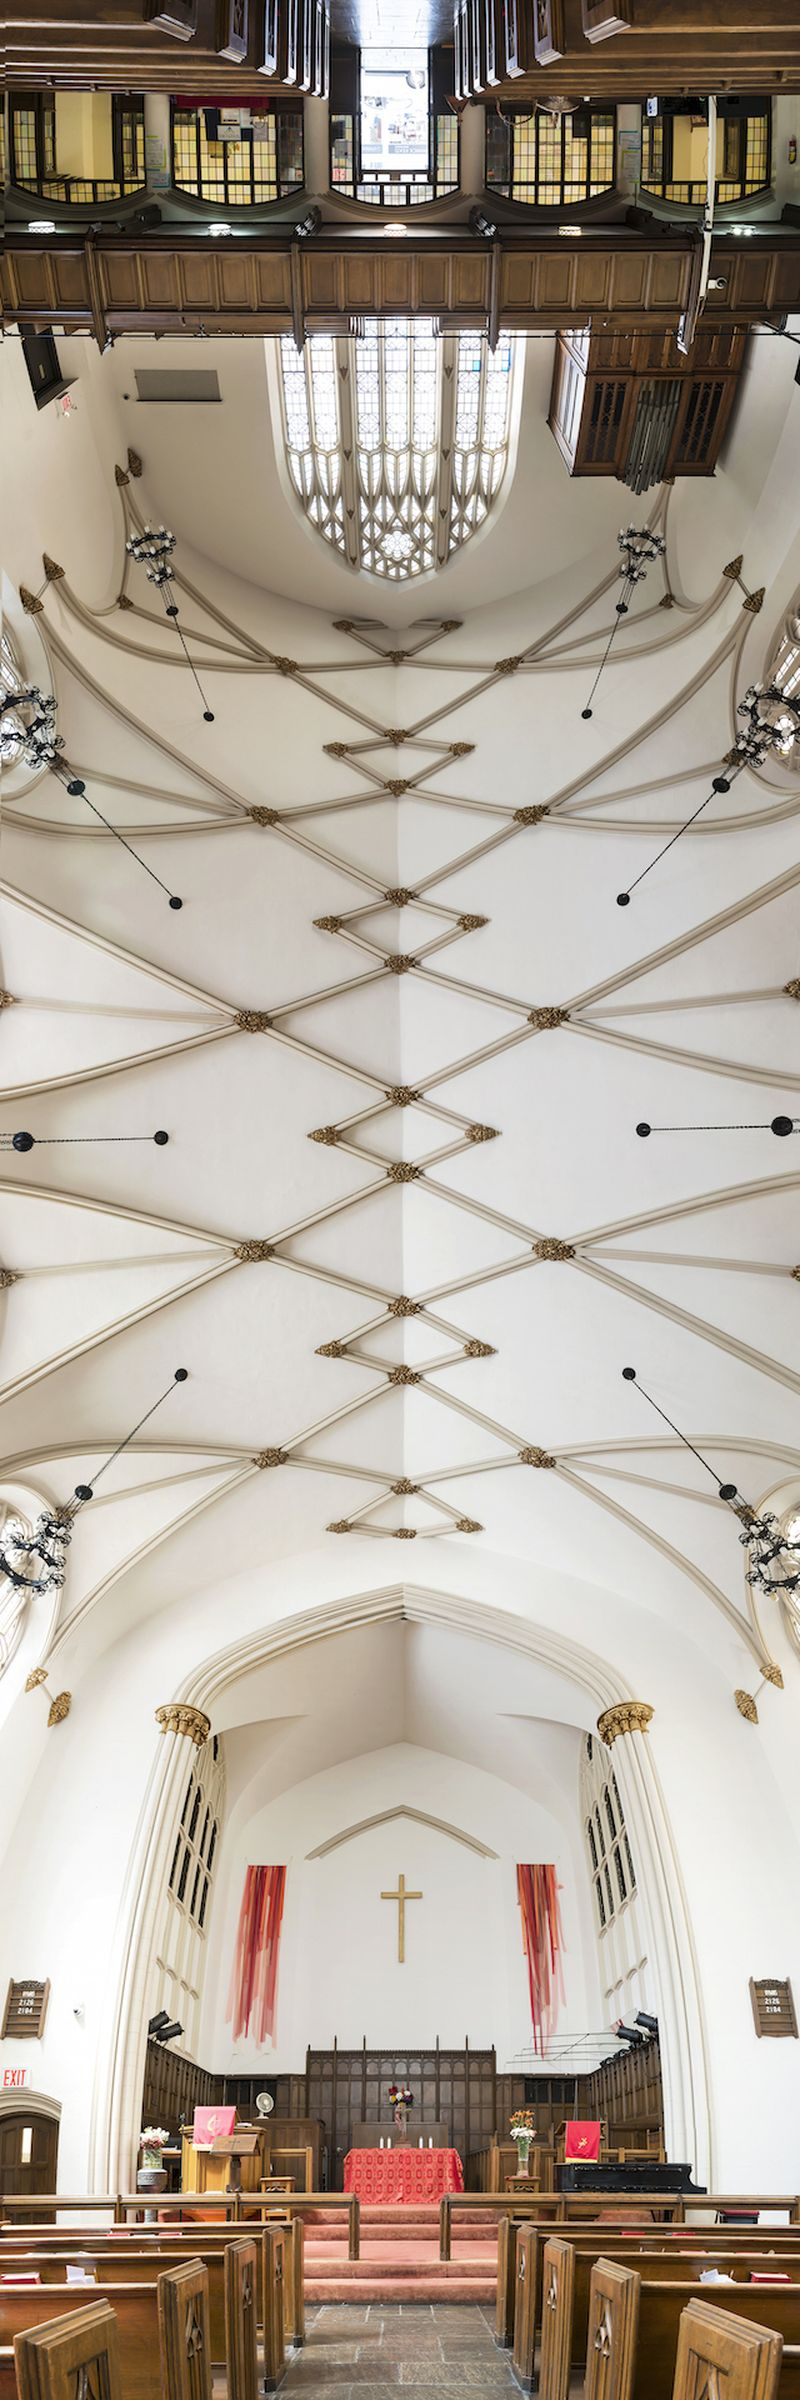 image: Check Out These Panoramas of NYC Churches by jenniferasos